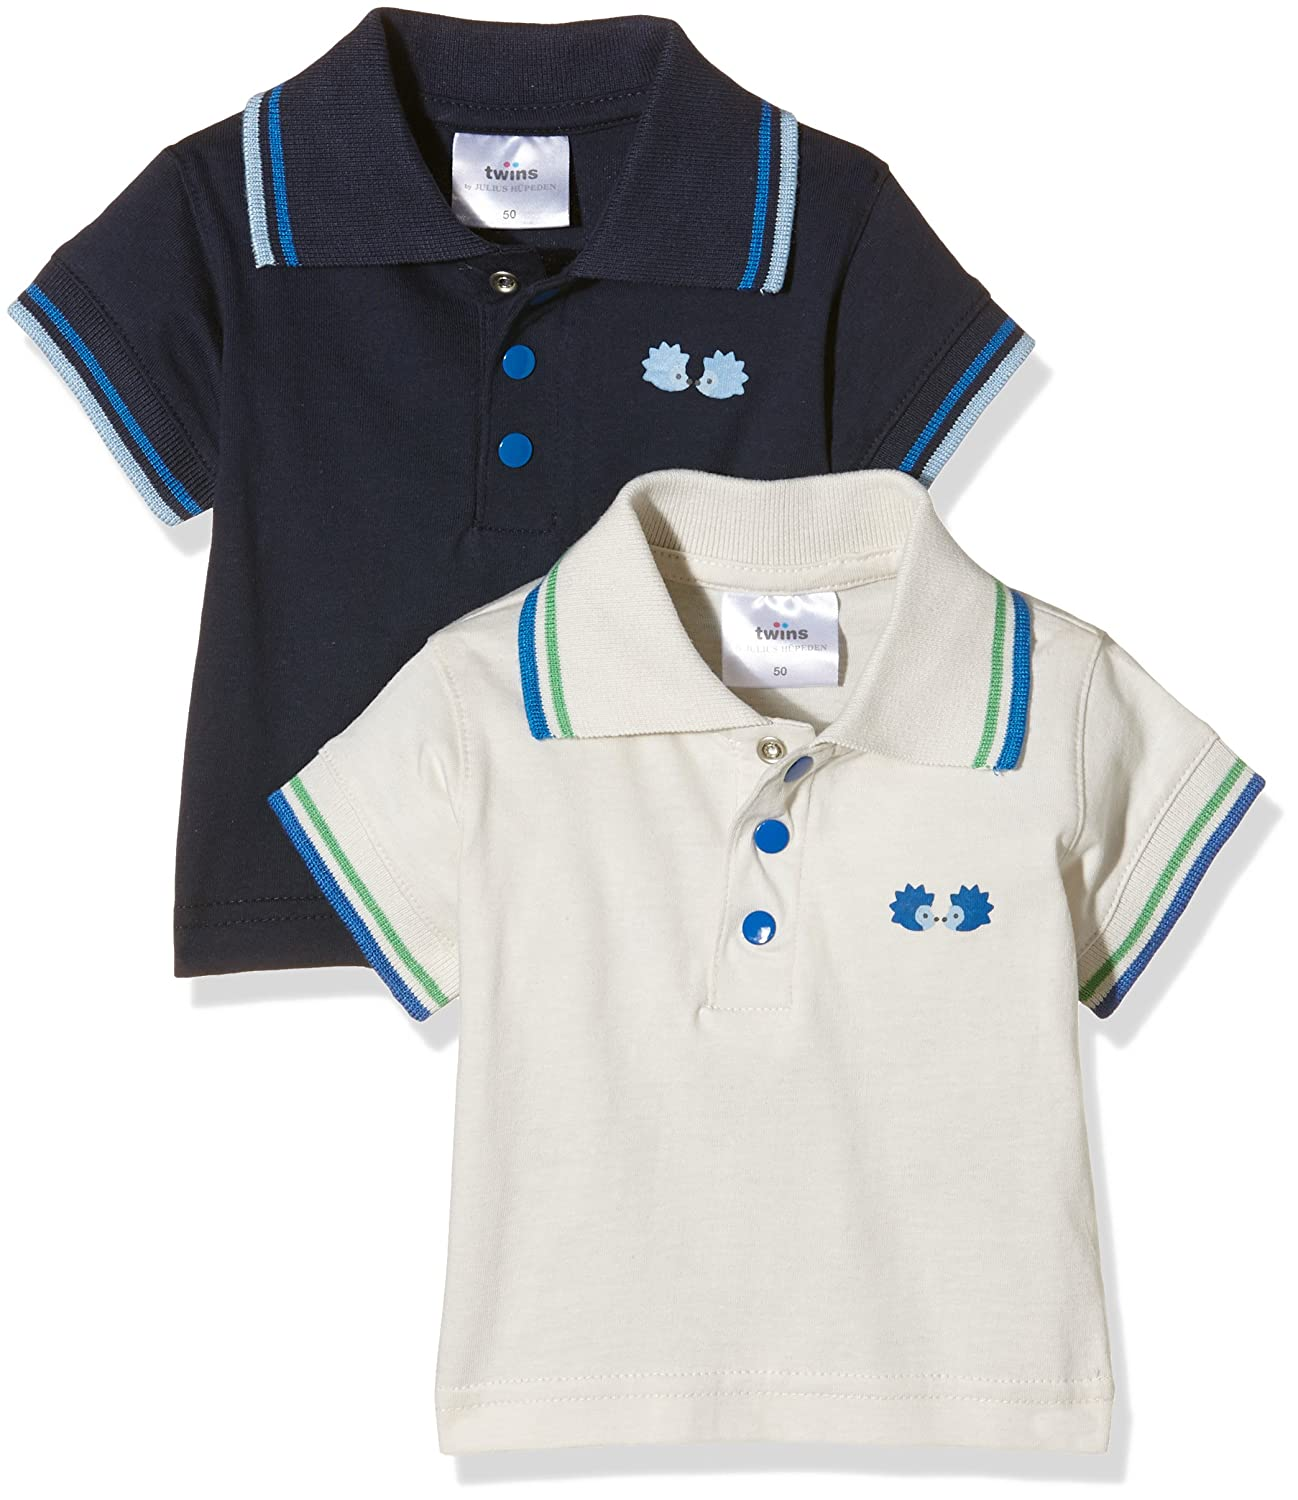 Twins Baby Boys' Polo Shirt, Pack of 2 Julius Hüpeden GmbH 1 127 35